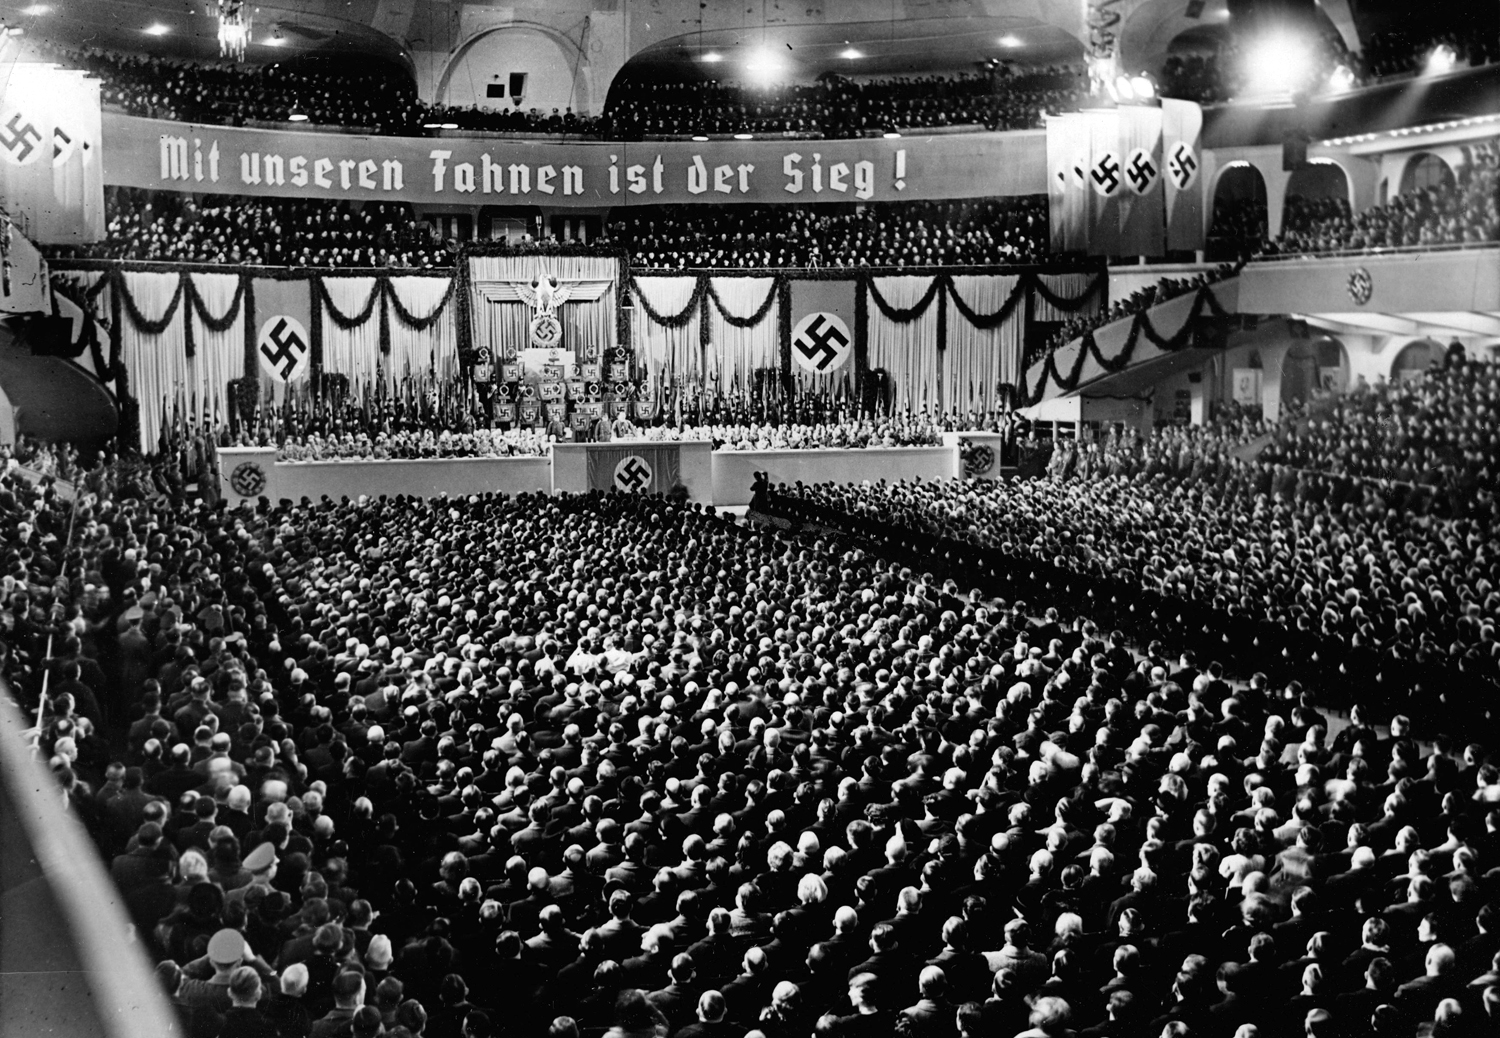 Adolf Hitler gives a speech in Berlin's Sportpalast for the anniversary of the Machtergreifung